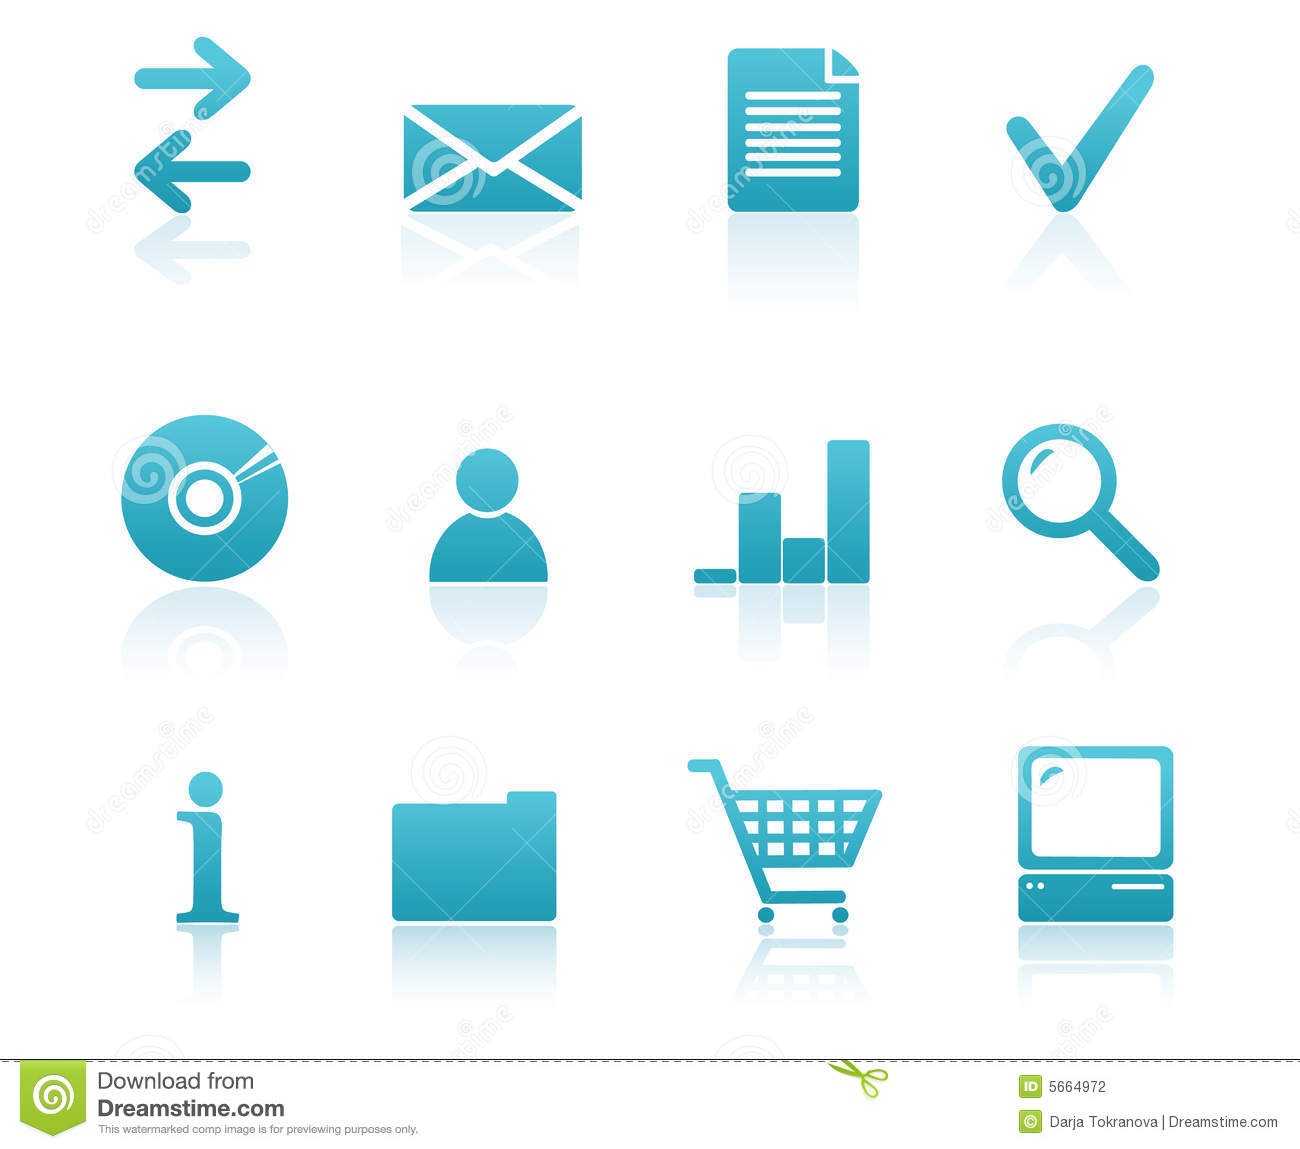 16 IT Business Icon Sets Images